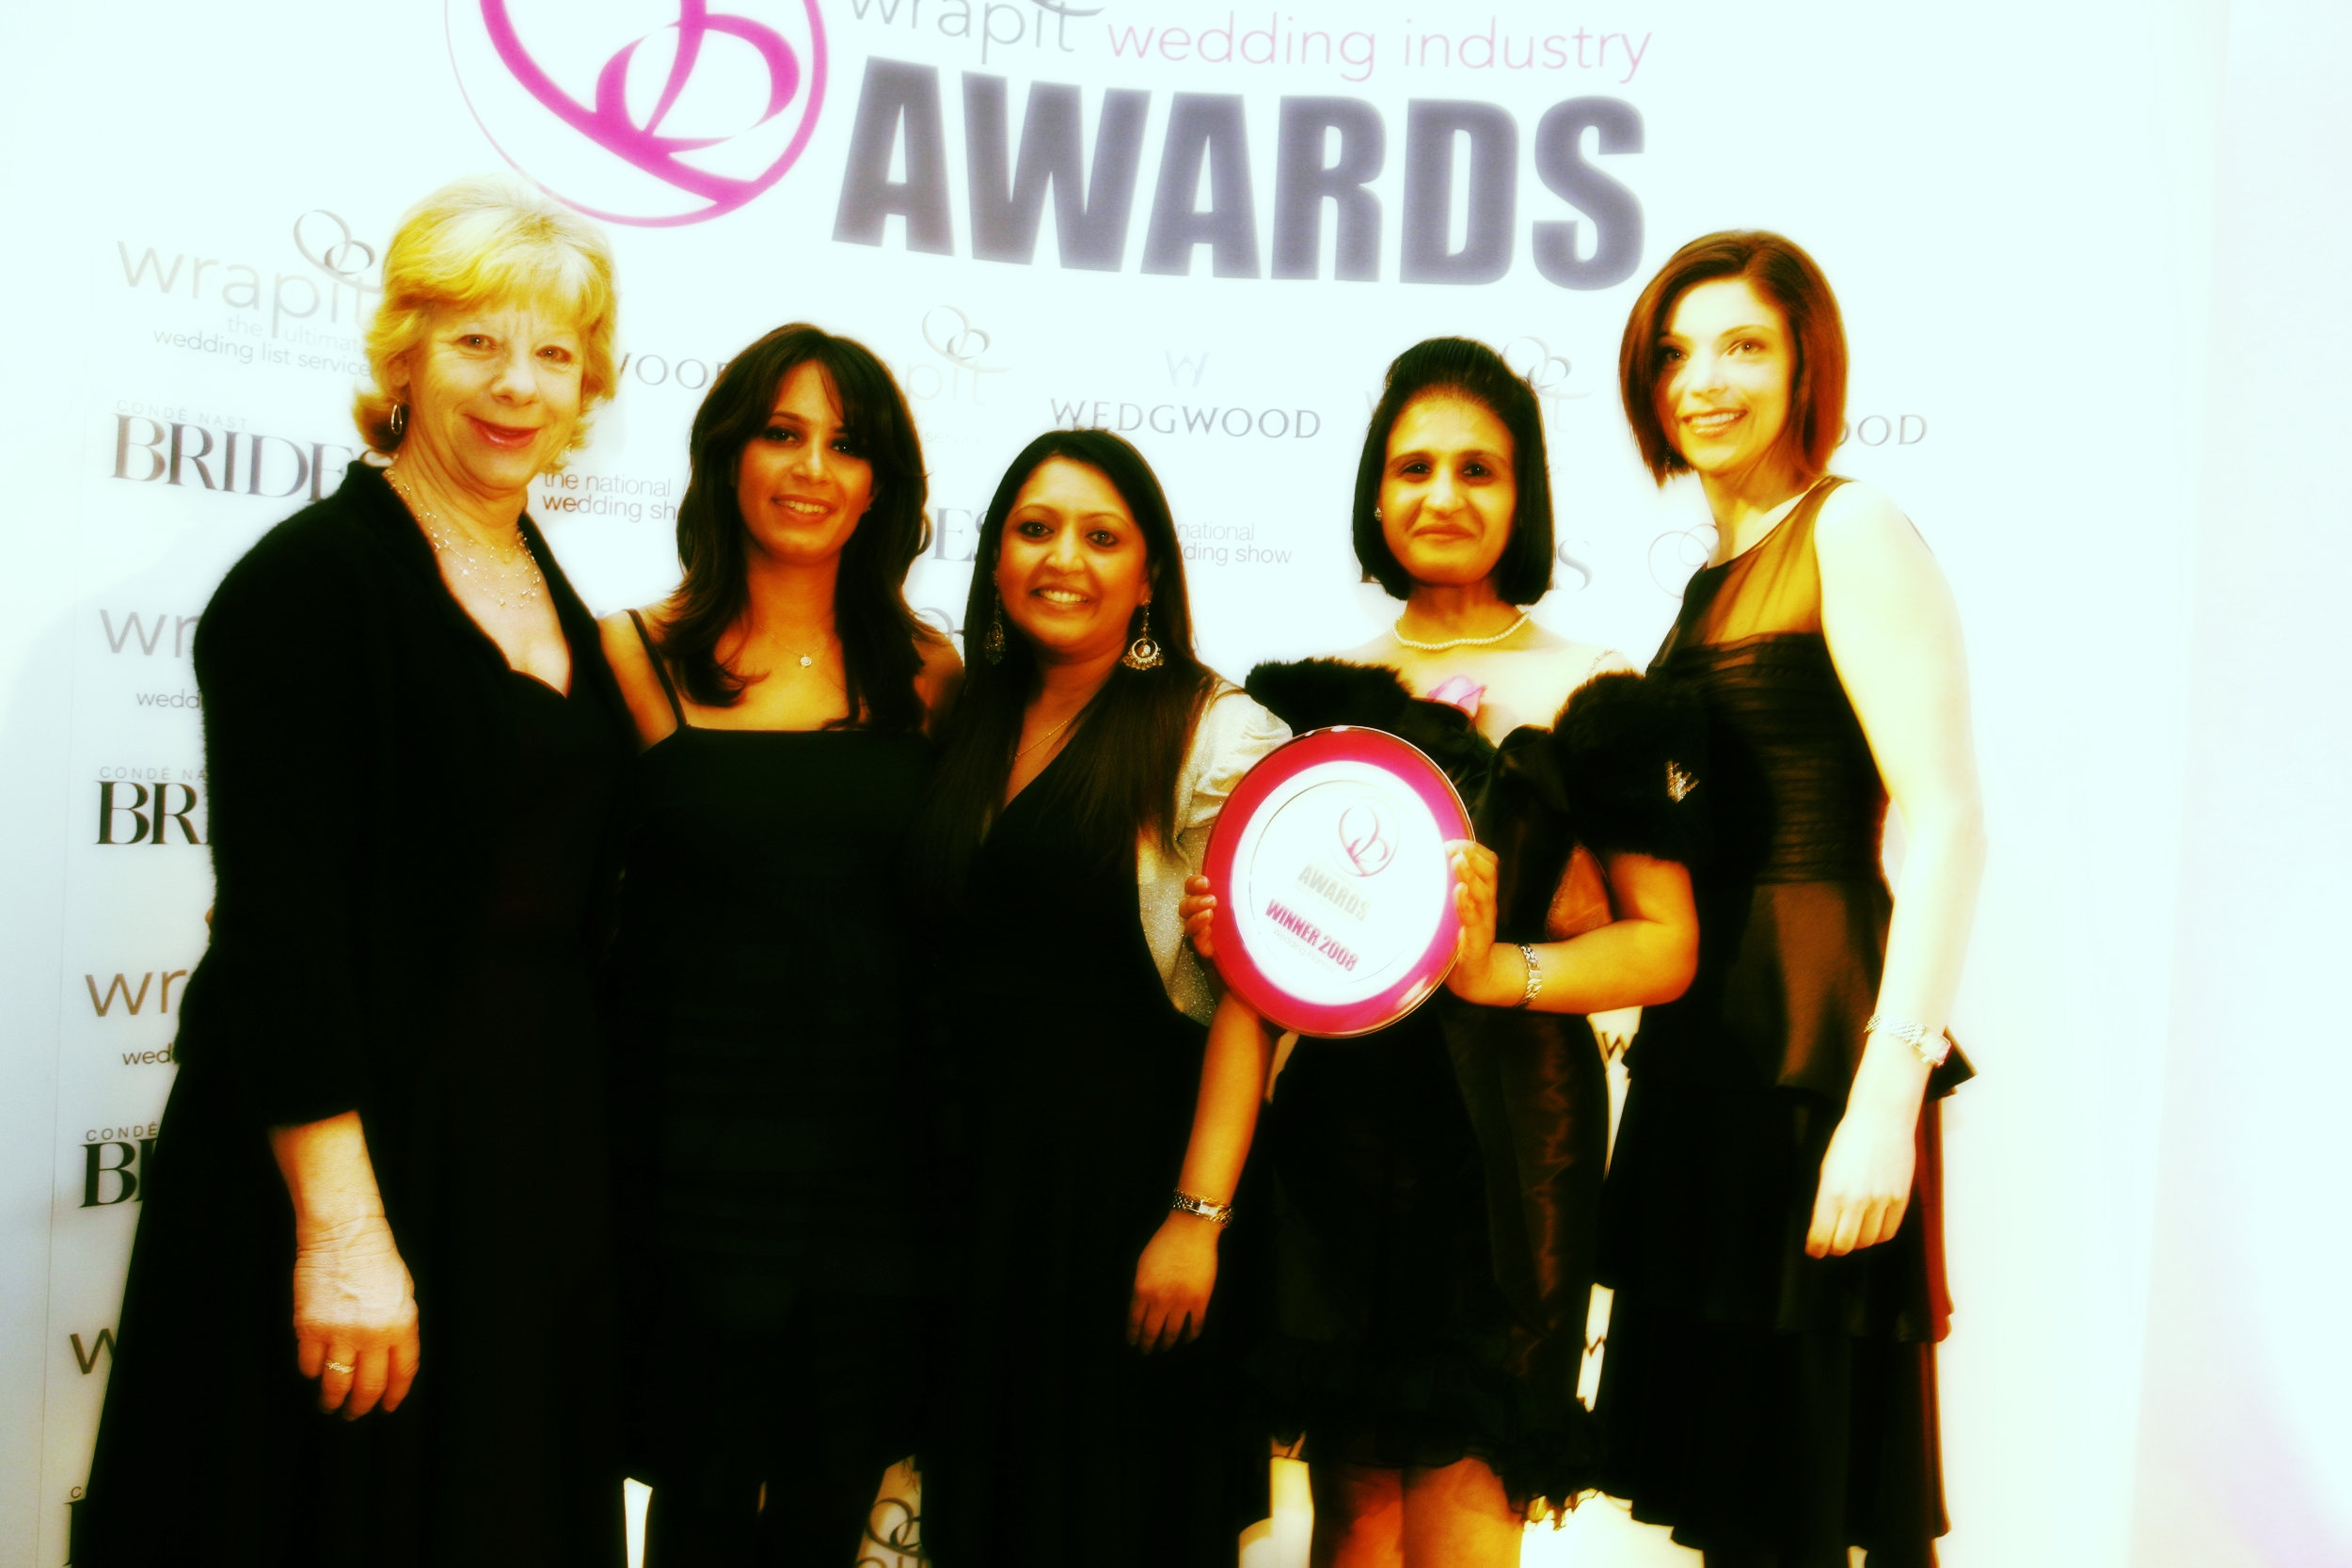 "Why were we voted UK's Best Wedding Planner Award?   - ""One of the best wedding planners ever to have existed in the united kingdom, we have seen many weddings and so called planners but Tania-Tapel Ltd exceeded expectations. Well done, a big thank you for making it all happen""""Our day was perfect because of Tania-Tapel, they took the stress out of the day, for ourselves and our family so they could sit back and relax – have recommended to friends and family for their weddings""""Anita Patel from Tania-Tapel ensured everything ran smoothly on our wedding day. We had such an amazing day which I know would not have been the same without Tania-Tapel""""Anita Patel was by far our best investment for our wedding. There was nothing that was too much for her. Our wedding day was perfect and we have her to thank for that!""""Tania-Tapel took over the co-ordination of a very large Indian wedding and made sure it ran very smoothly. They were very efficient and thorough, and helped enormously on the day to resolve a very late problem. The bride and groom had nowhere to spend their wedding night due to a cock up at the wedding venue. Tania-Tapel ensured that this was sorted as quickly as possible and without us really knowing too much about it. Very good service""""Simply amazing – well organized, proactive, creative, good network, fantastic""""Highly professional level of service and great attention to detail in every aspect""""Outstanding. I consider myself to be a tough task master and both my wife and I are very particular in how we like things done. From start to finish (a period of some 13 months) we had a very dedicated planner, namely Ranjna at Tania-Tapel. She was instumental in helping us to achieve the type of day we wanted. A lot of the day to day stress was taken out of the wedding preparationNot only does Tania-Tapel benefit from a wealth of resources and contacts, they have the personnel at their disposal to put this to use effectively. An example would be where Ranjna would be unavailable, I would be able to speak to Anita who was also familiar with every facet of our wedding. Such attention to detail is rare.Above all, I accept that couples planning their wedding are, at times, not the easiest people to work with. Ranjna assured and impressed us right from the start. She was always able to guide us in the right direction with her suggestions, but never enforcing her views as she was considerate in respecting our wishes. First Class""""We were very happy to have Tania-Tapel as our wedding planner. The whole day ran very smoothly and we and our families could relax and enjoy the moment – would highly recommend them"""